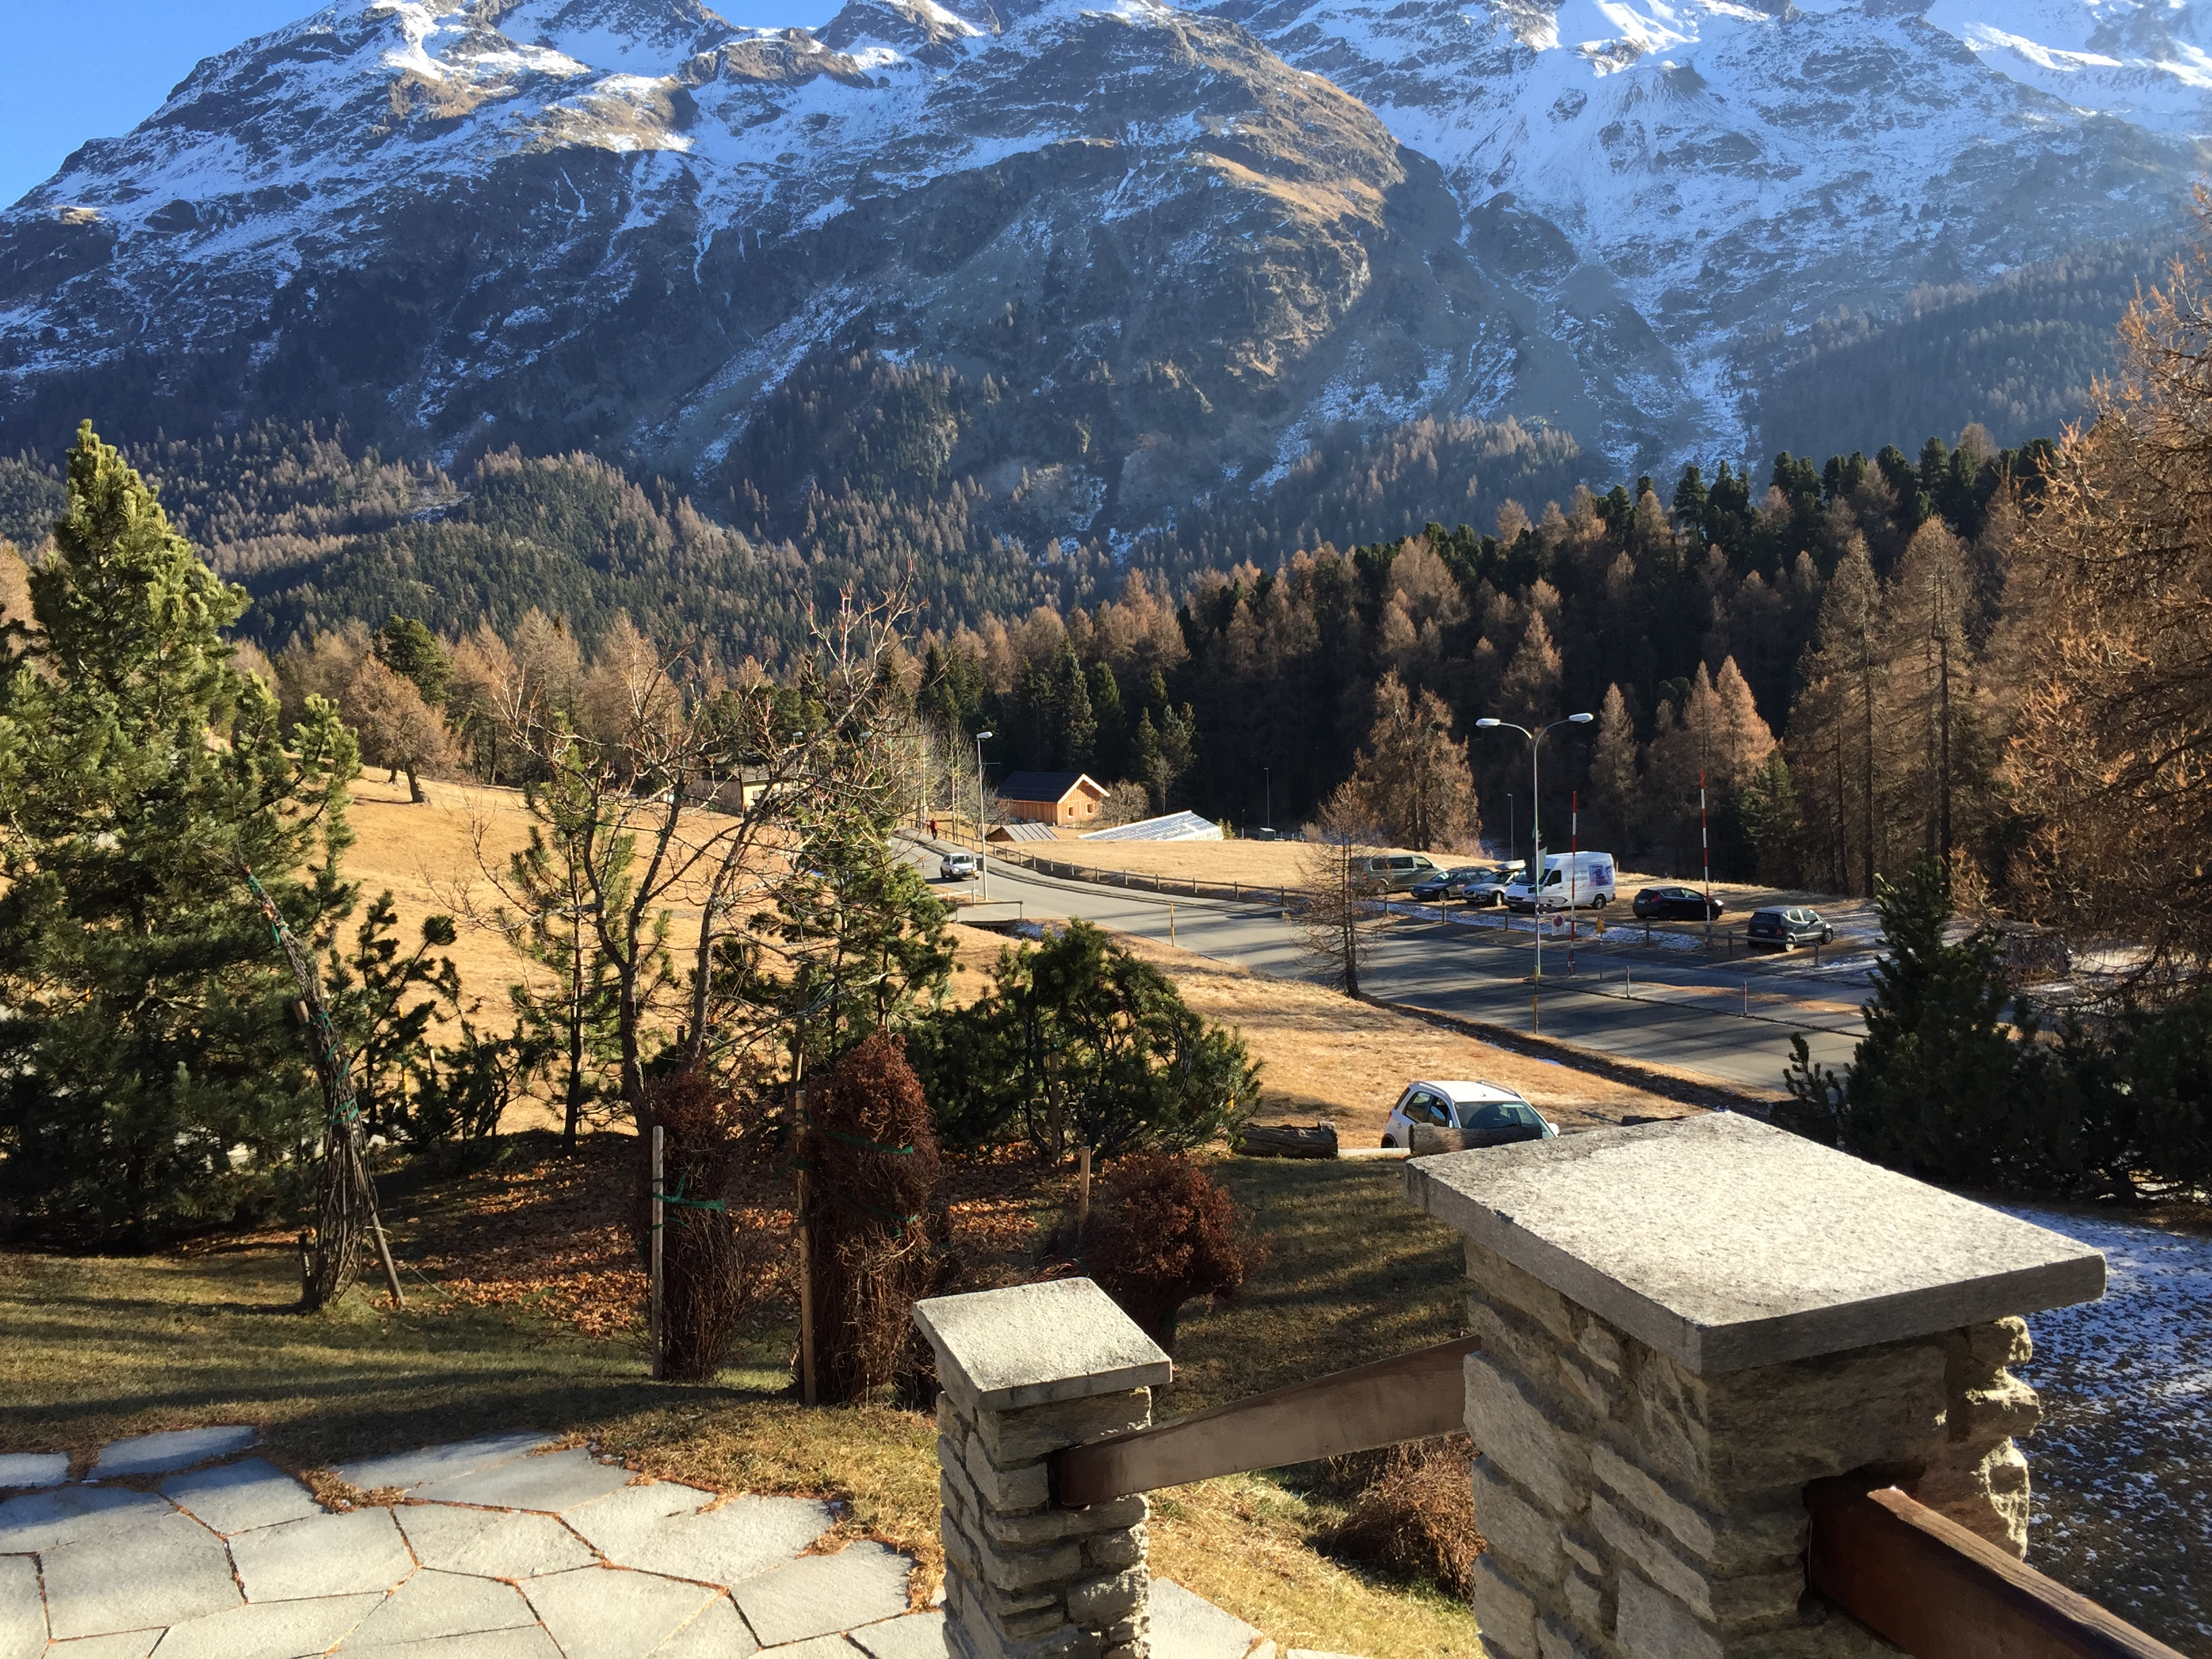 Single Family Home for Sale at Villa at Suvretta St. Moritz, Grisons Switzerland